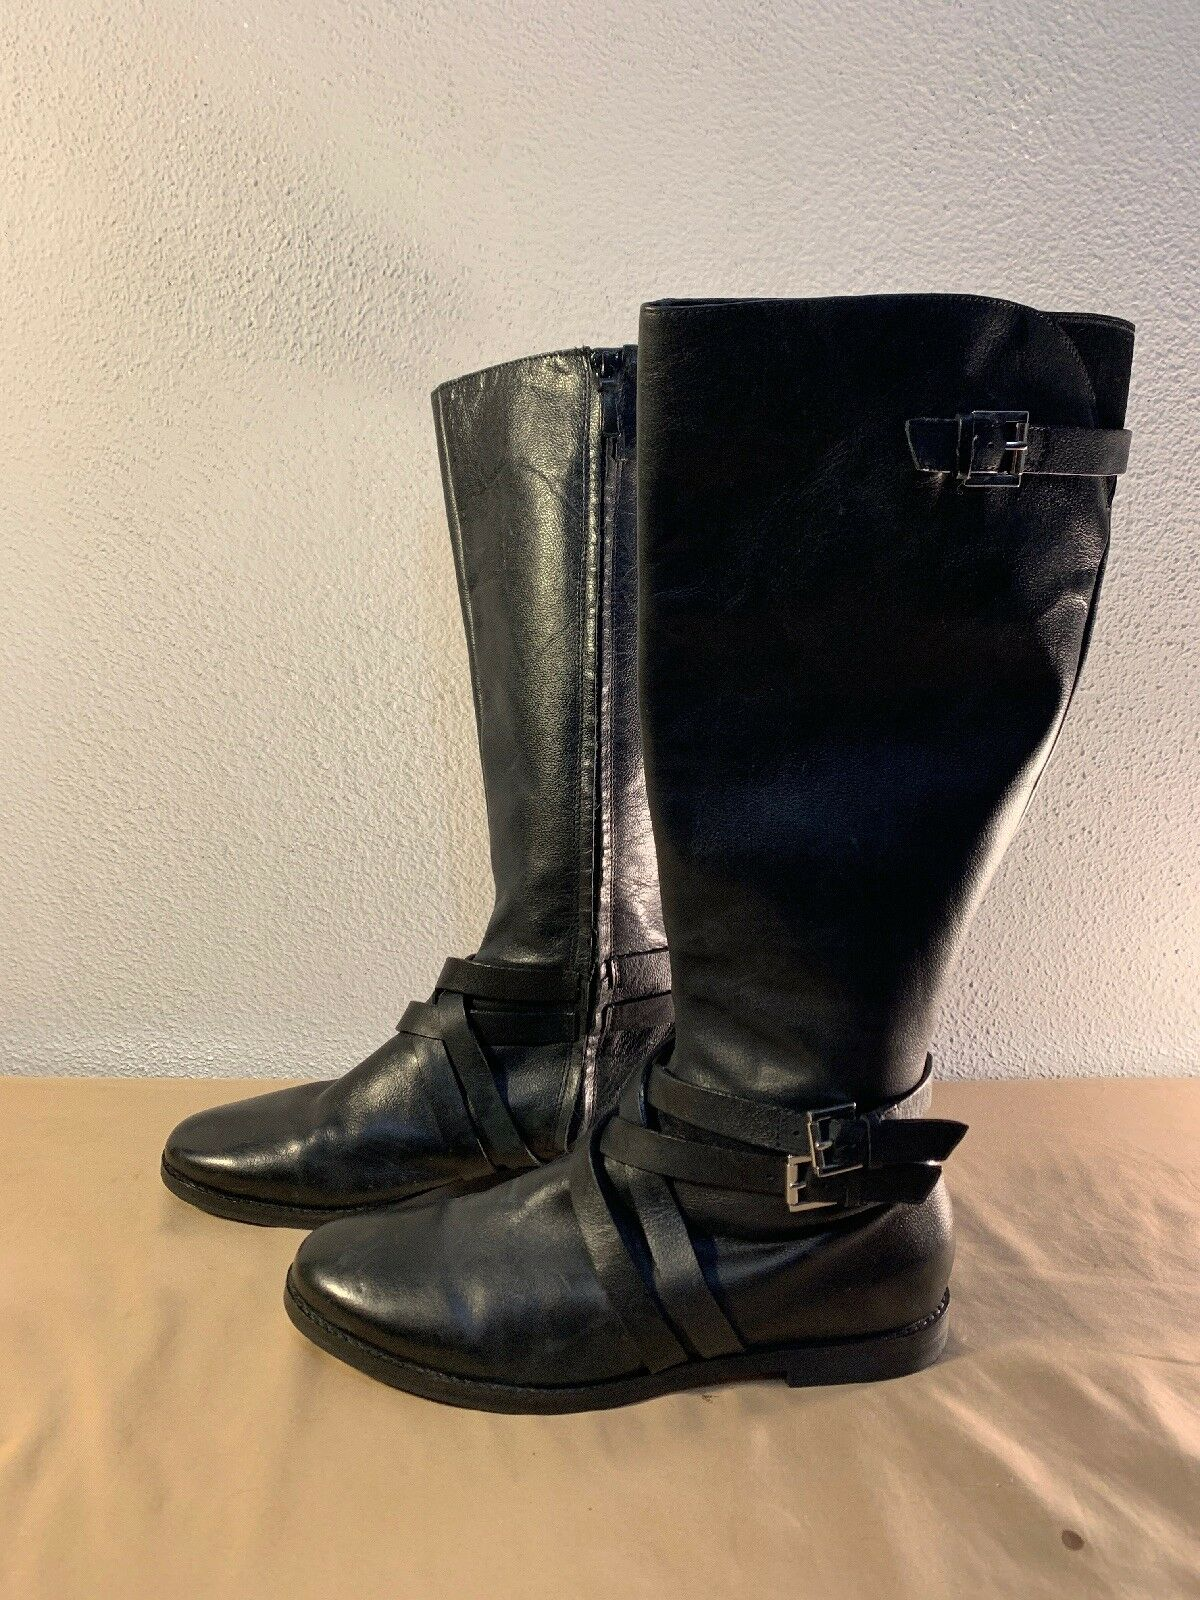 COLE HAAN AIR PETRA STRAP schwarz CALF LEATHER SIDE ZIP RIDING Stiefel 10B D38582